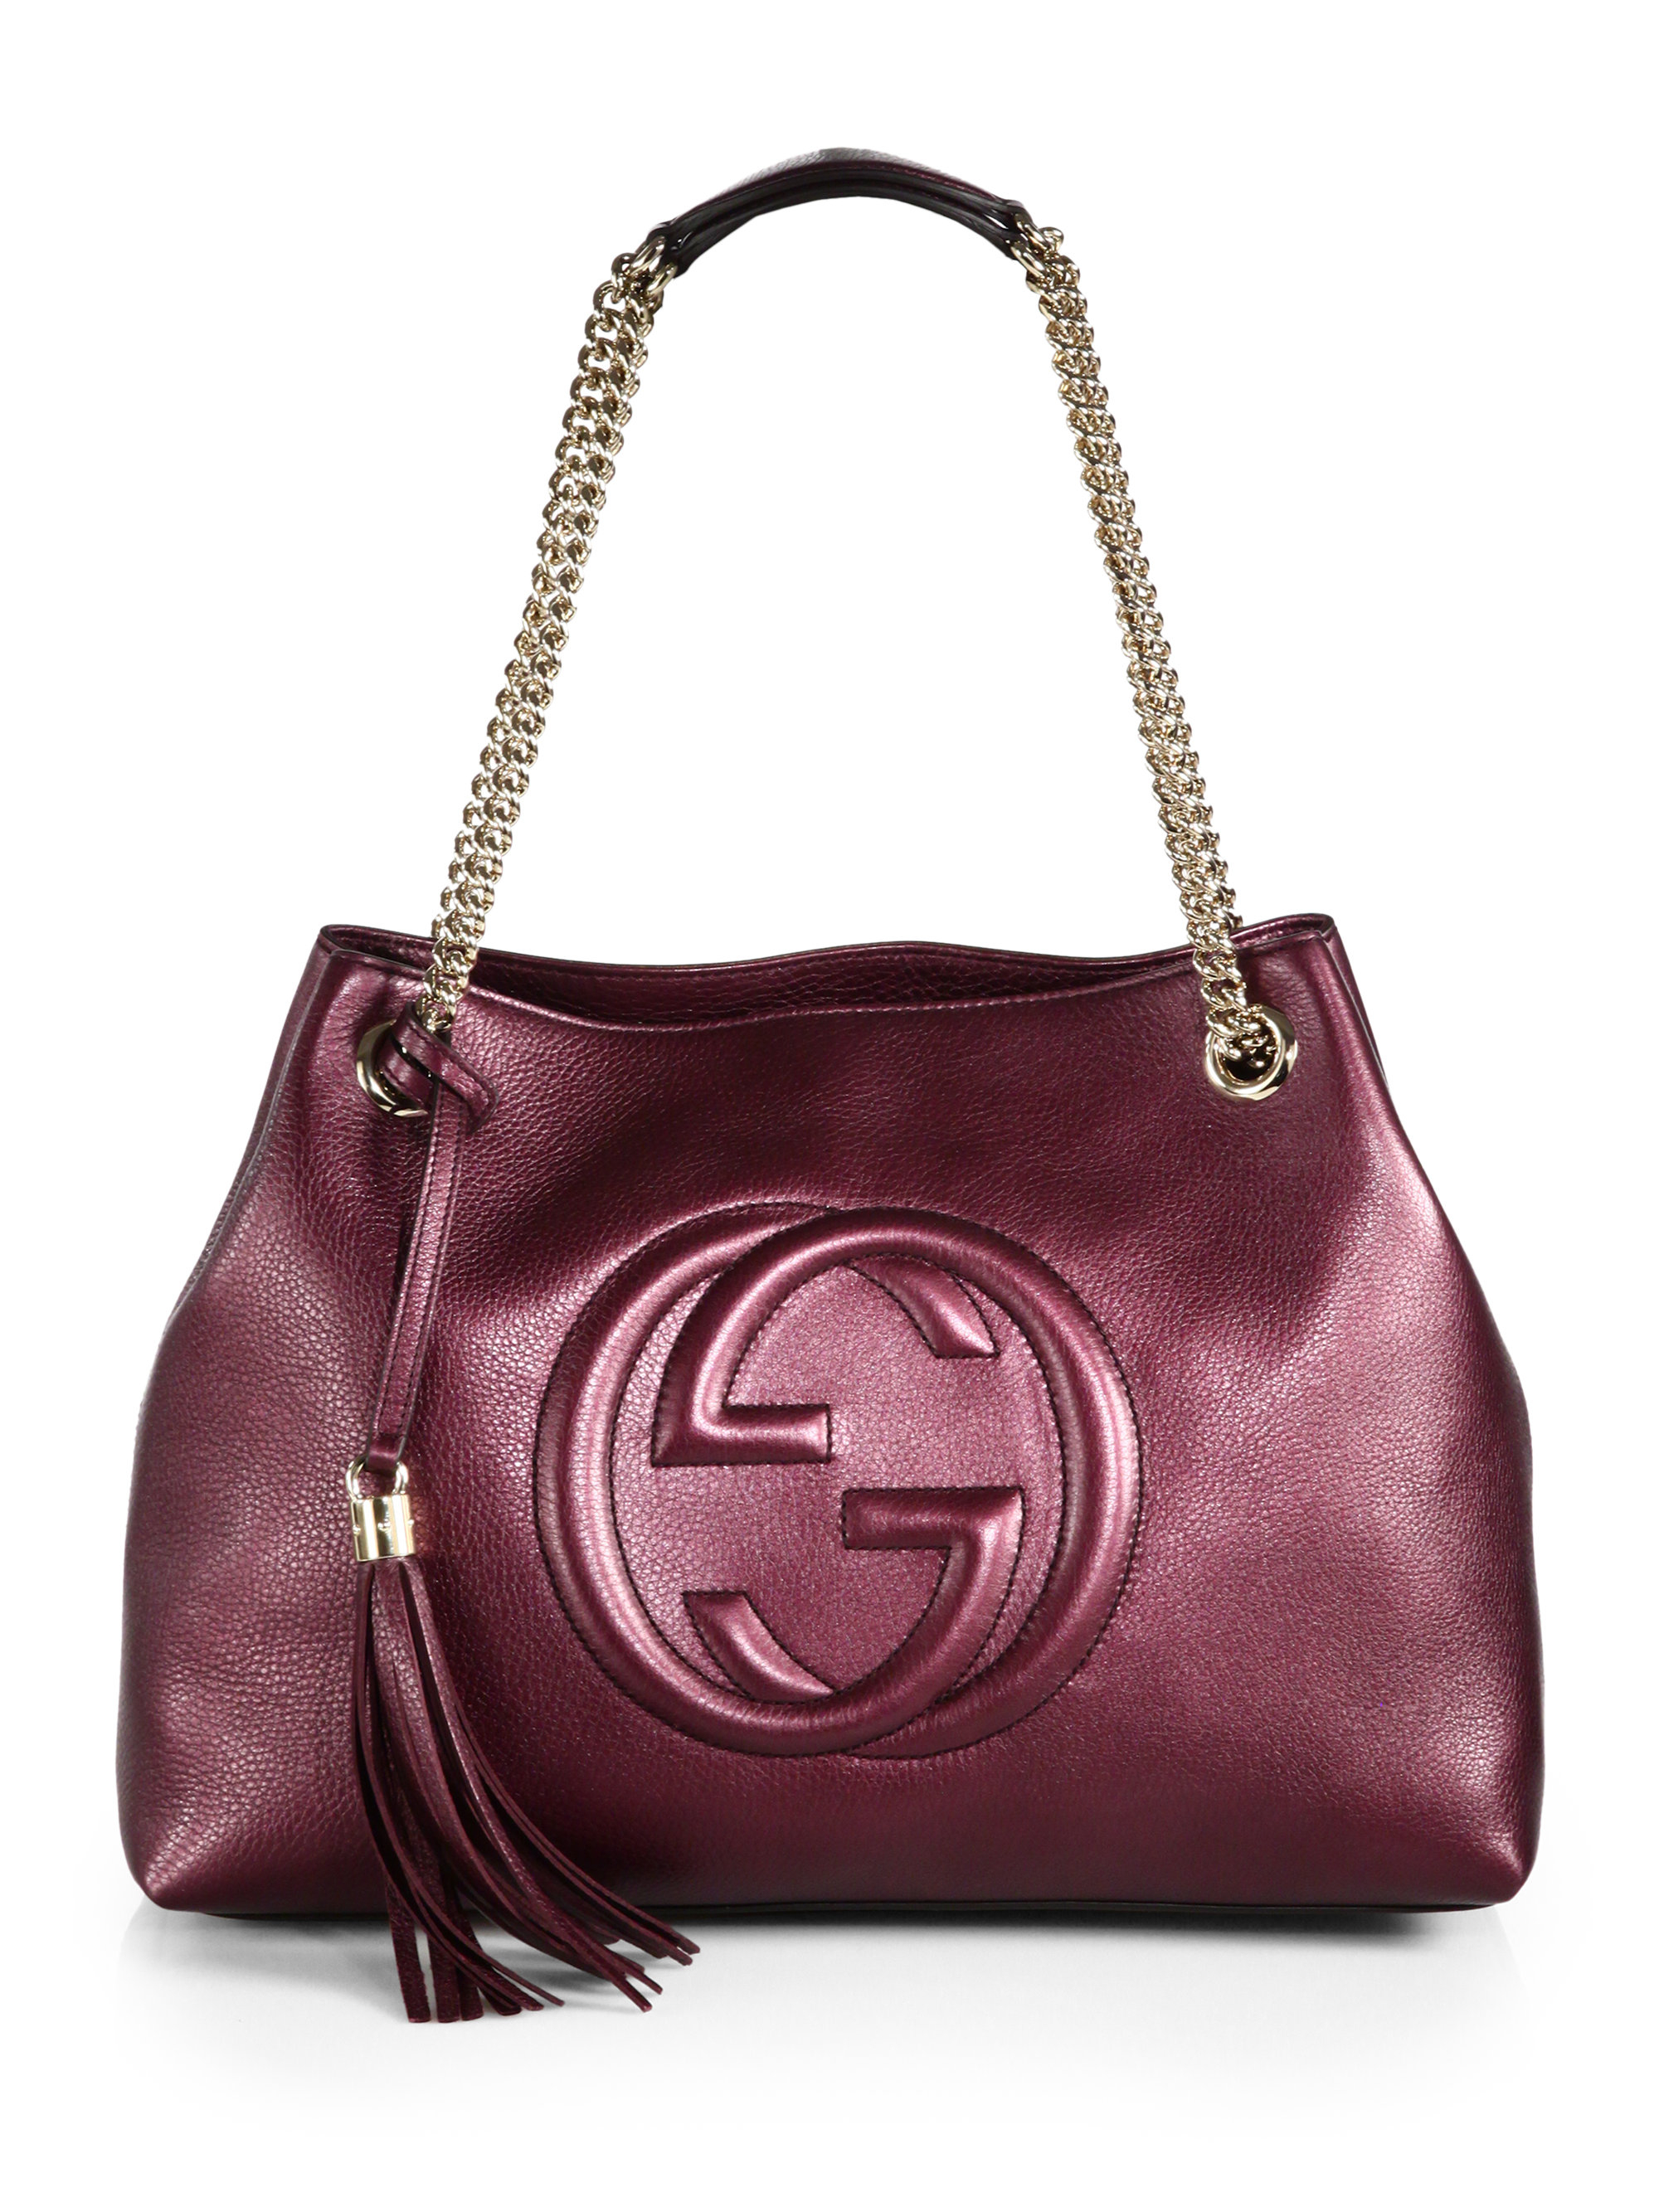 Lyst - Gucci Soho Metallic Leather Shoulder Bag in Red 2991bff0488e8